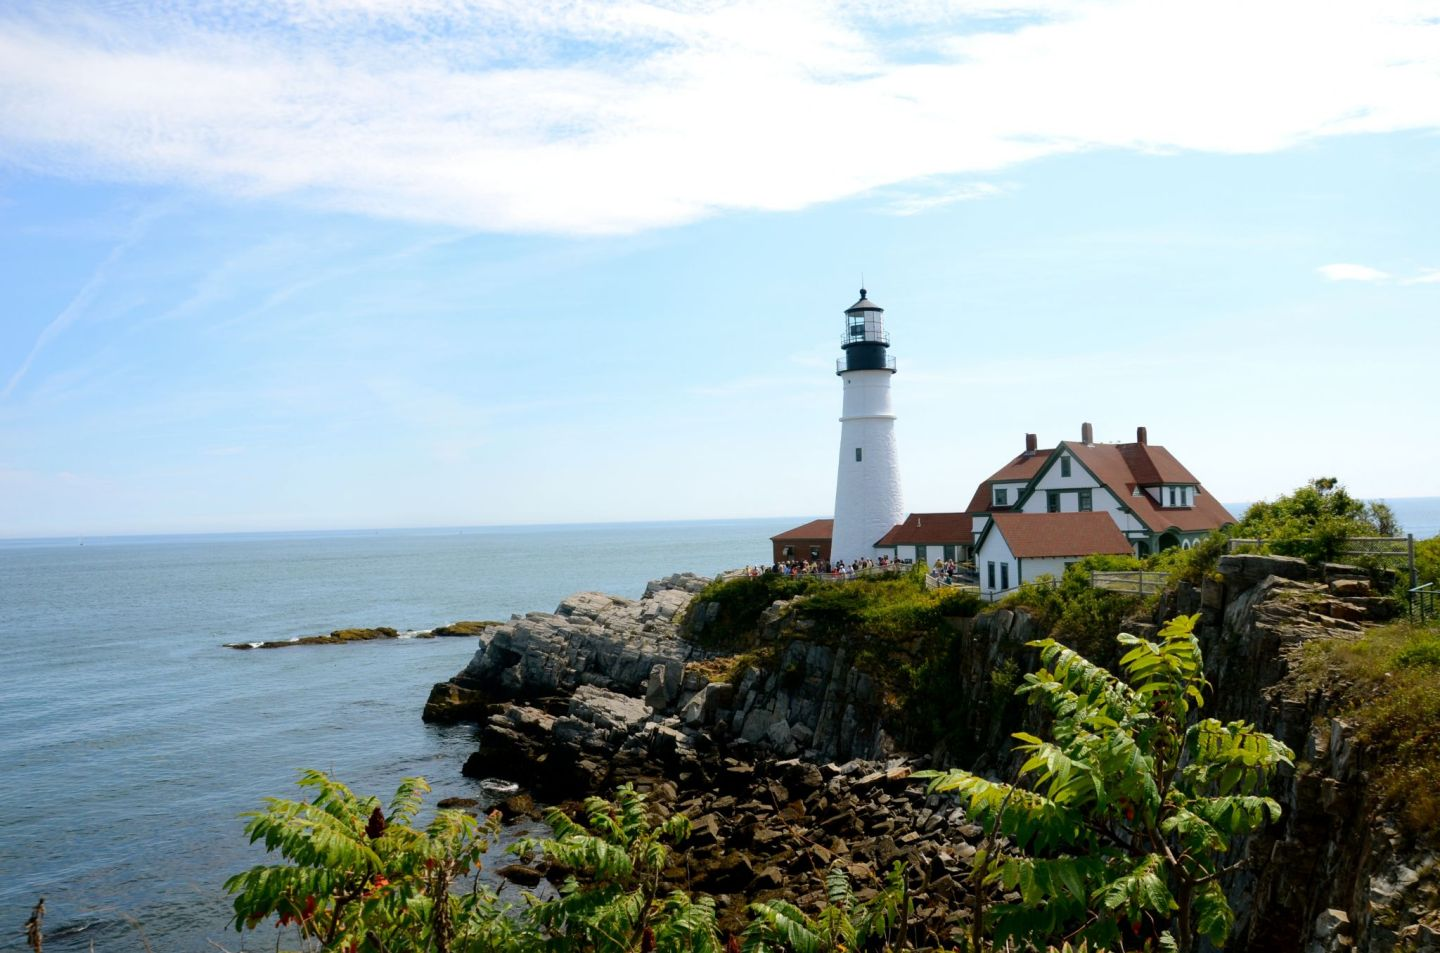 Fun things to do in Portland, Maine includes a visit to the Portland Headlight.